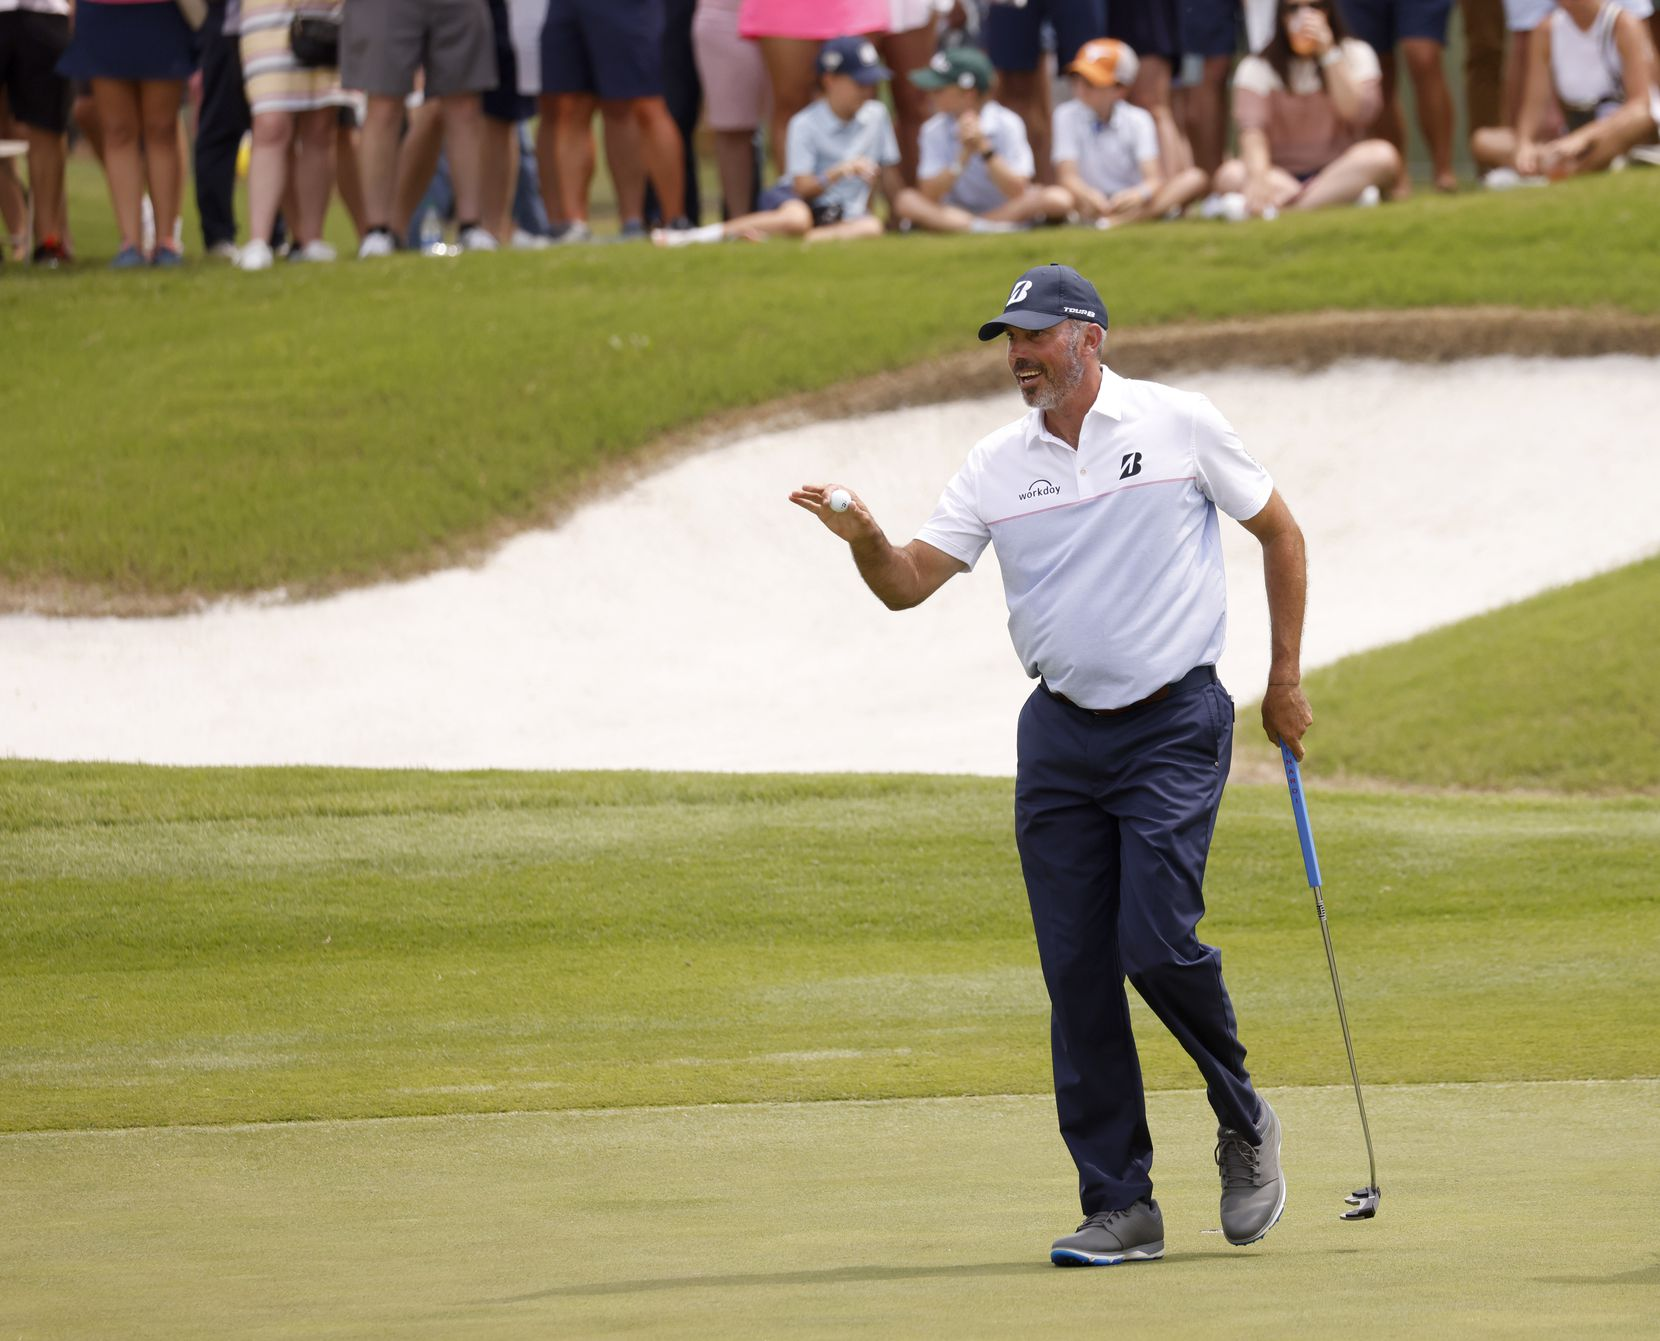 Matt Kuchar acknowledges the crowd after getting a birdie on the 12th hole during round 3 of the AT&T Byron Nelson  at TPC Craig Ranch on Saturday, May 15, 2021 in McKinney, Texas. (Vernon Bryant/The Dallas Morning News)